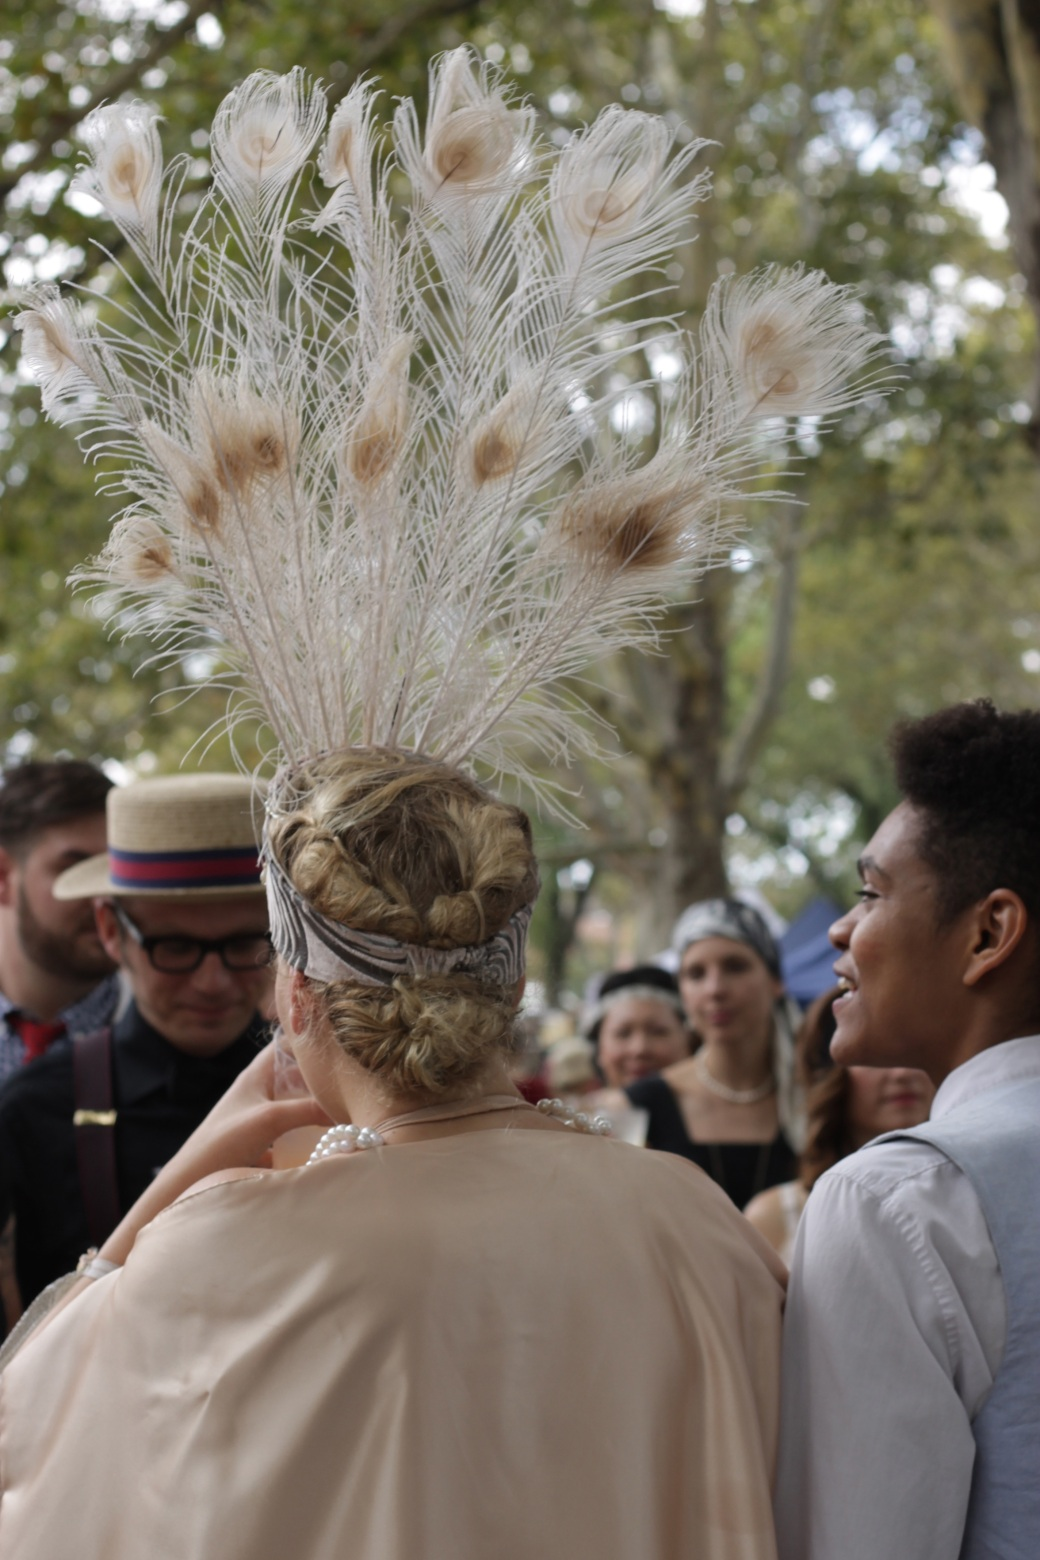 new york city governors island jazz age lawn party august 17 2014 93